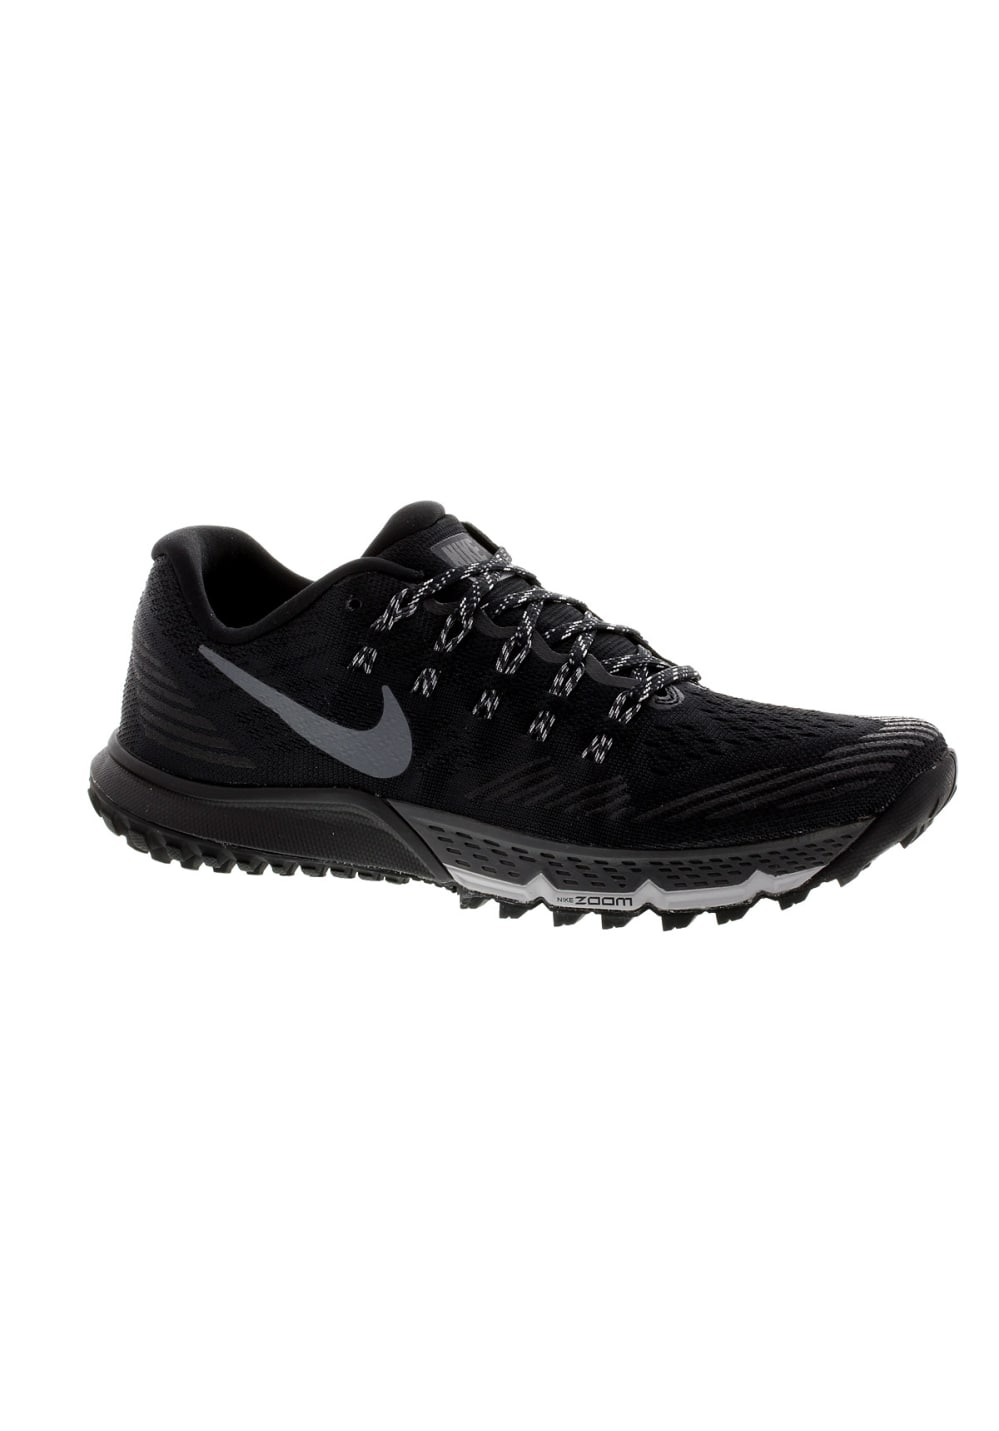 Nike Air Zoom Terra Kiger 3 Running shoes for Women Black